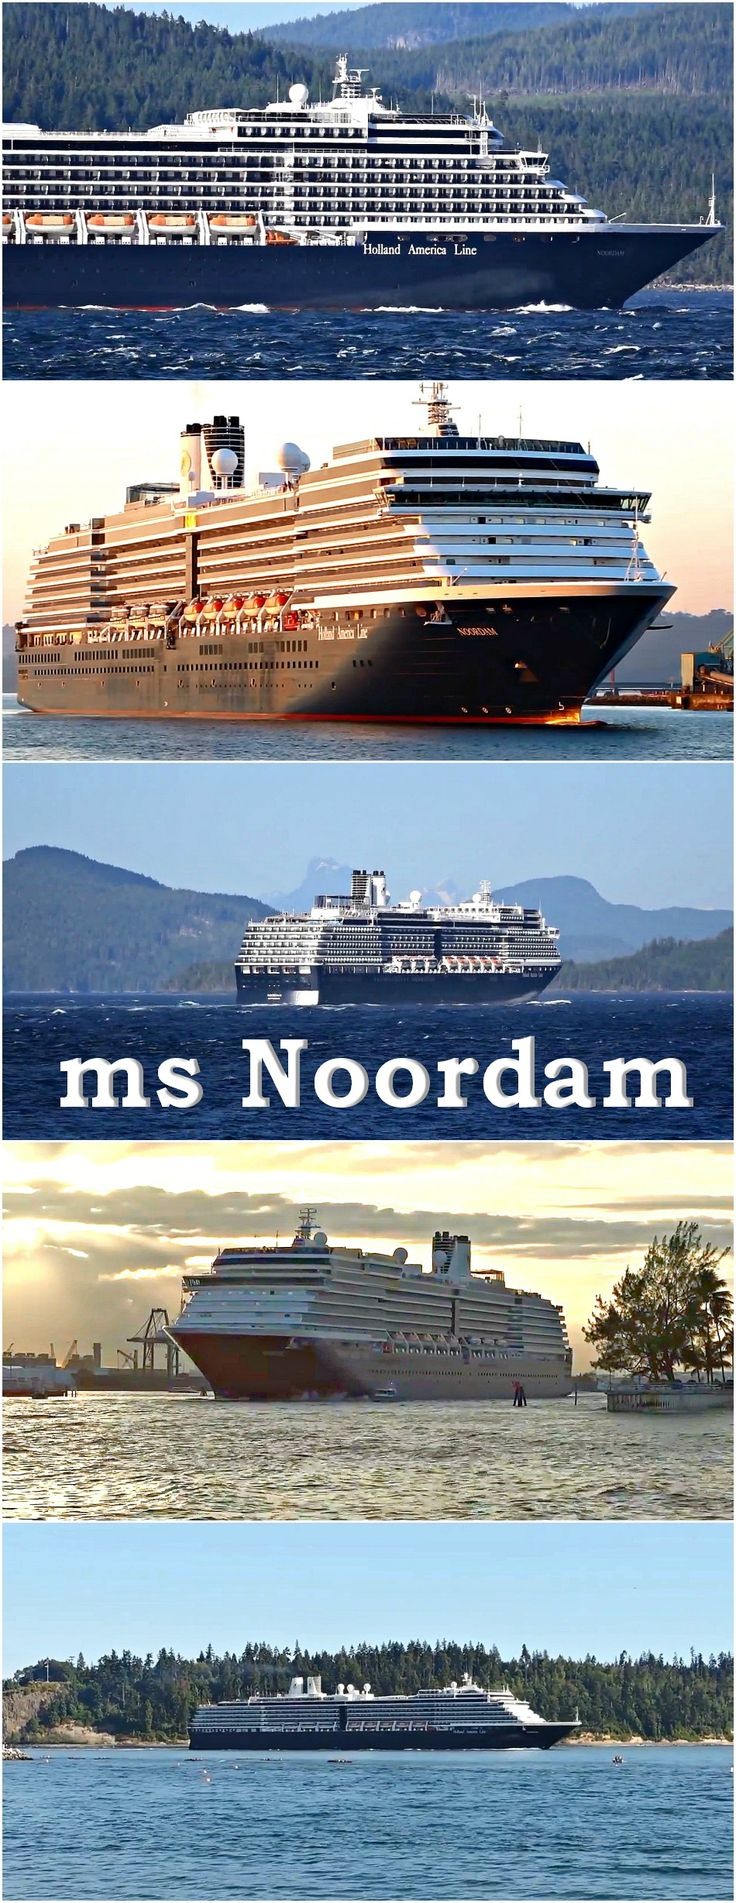 Holland America Line's ms Noordam is all about inspiring awe in your cruises with an undying signature of excellence